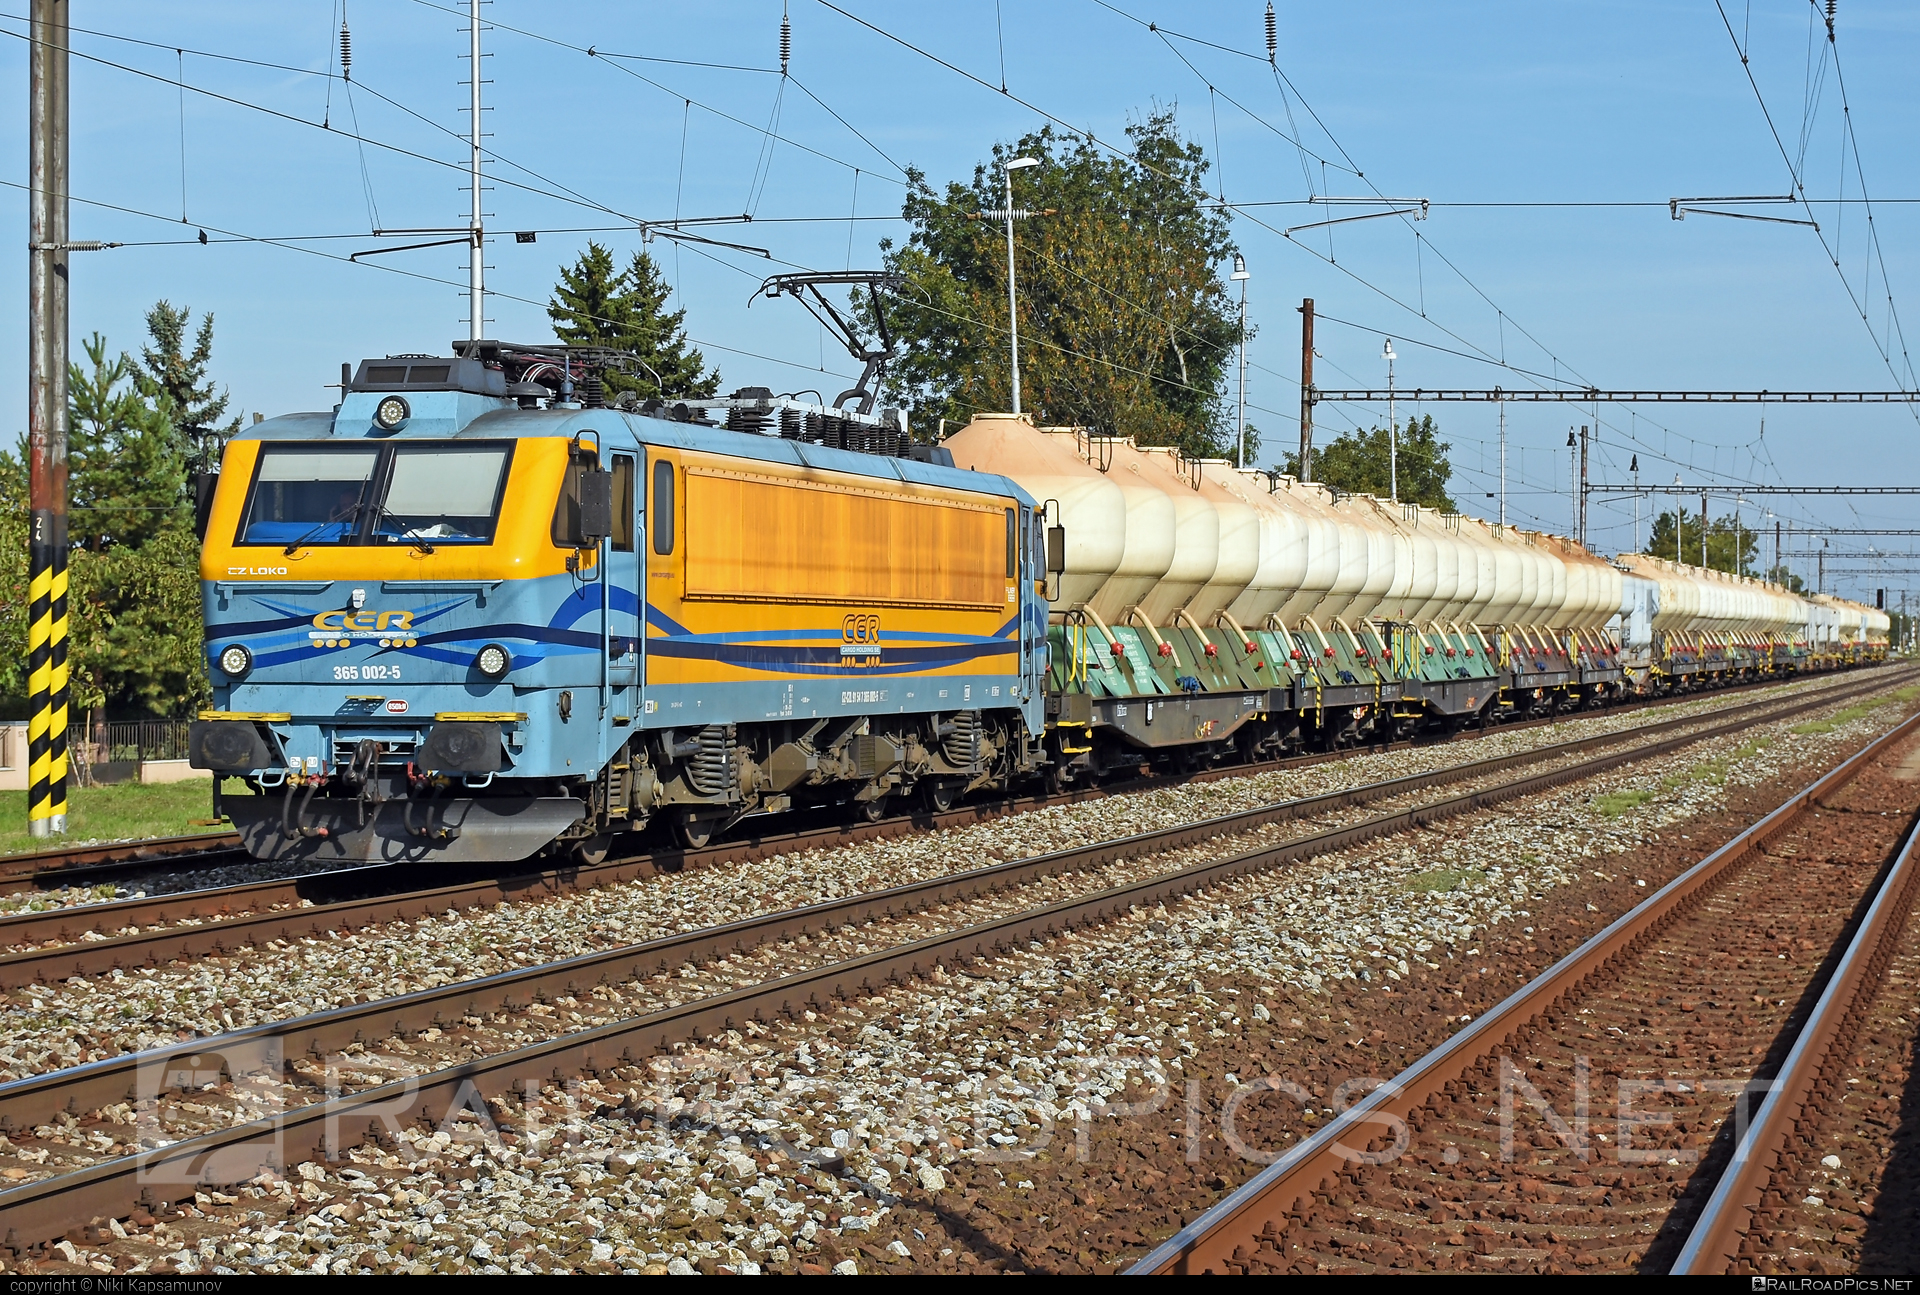 CZ LOKO EffiLiner 3000 - 365 002-5 operated by CER Slovakia a.s. #belgicanka #cer #cersk #cerslovakia #cerslovakiaas #czloko #czlokoas #effiliner #effiliner3000 #sncb12 #sncbclass12 #uacs